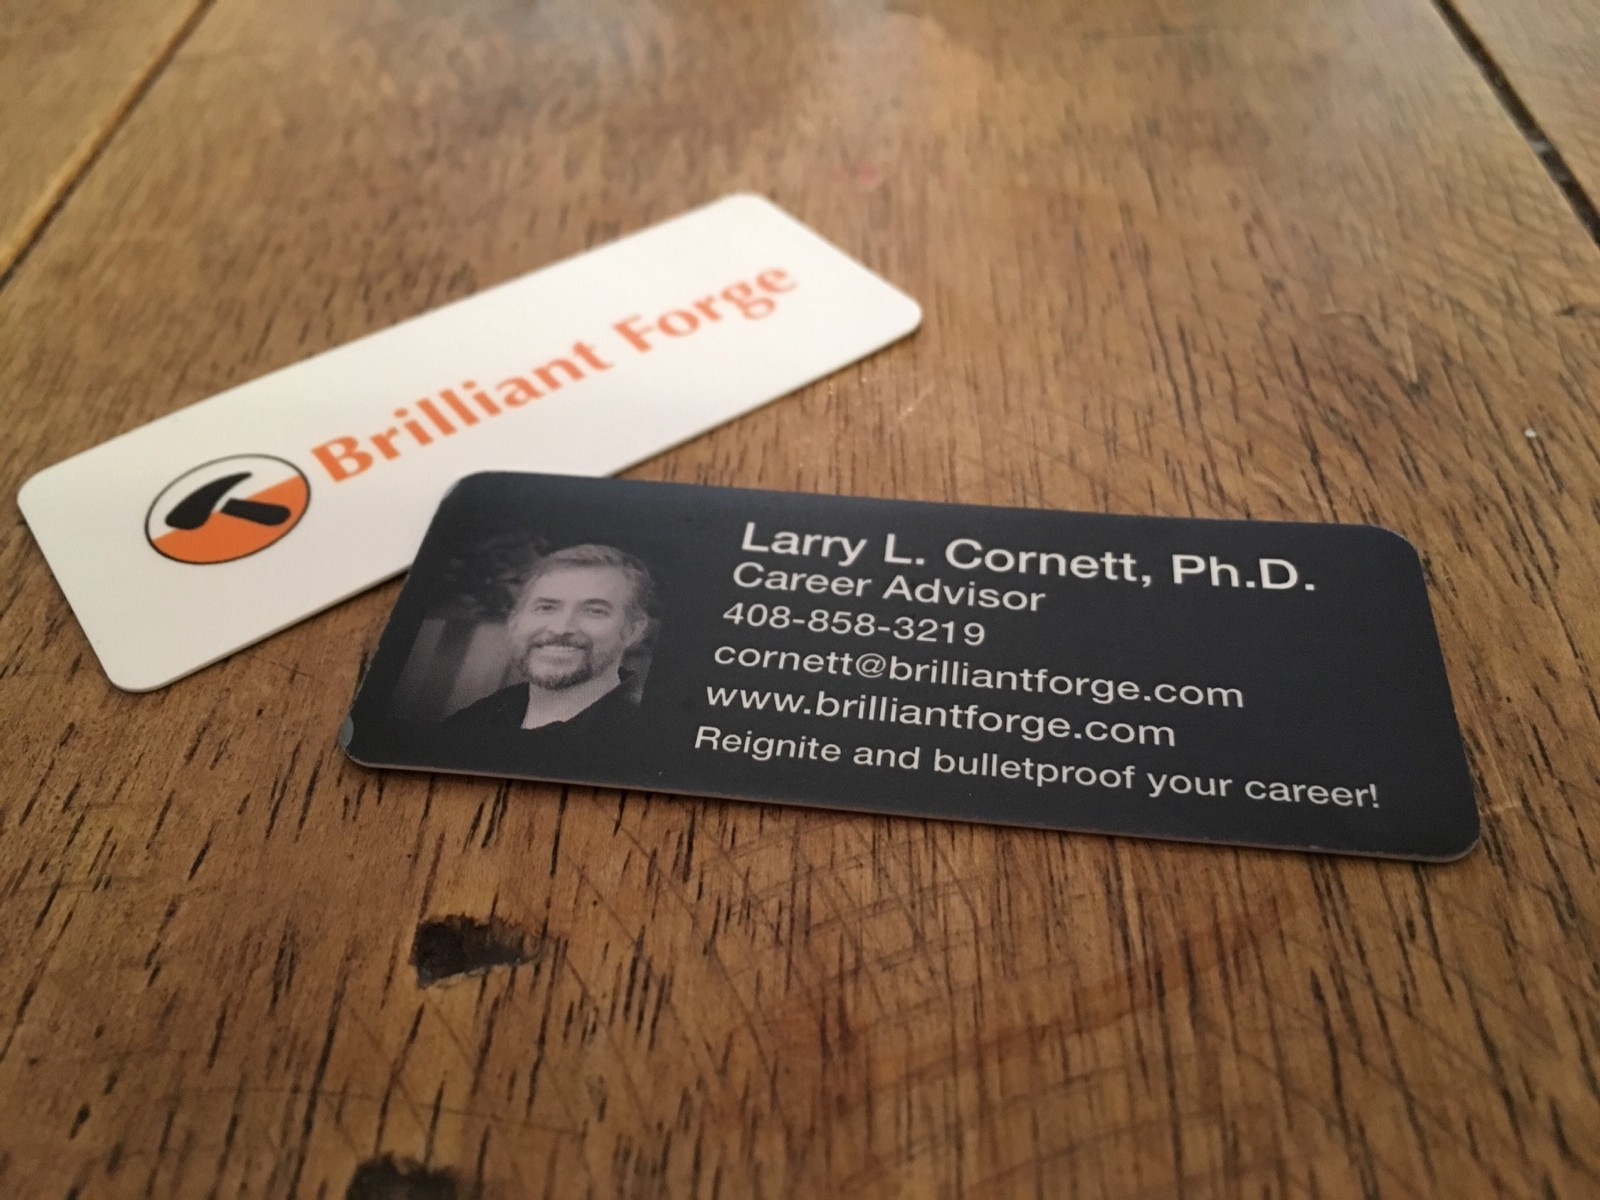 Stop fixating on business cards brilliantforge medium its my preferred way to learn more about someone with whom im interested in doing business colourmoves